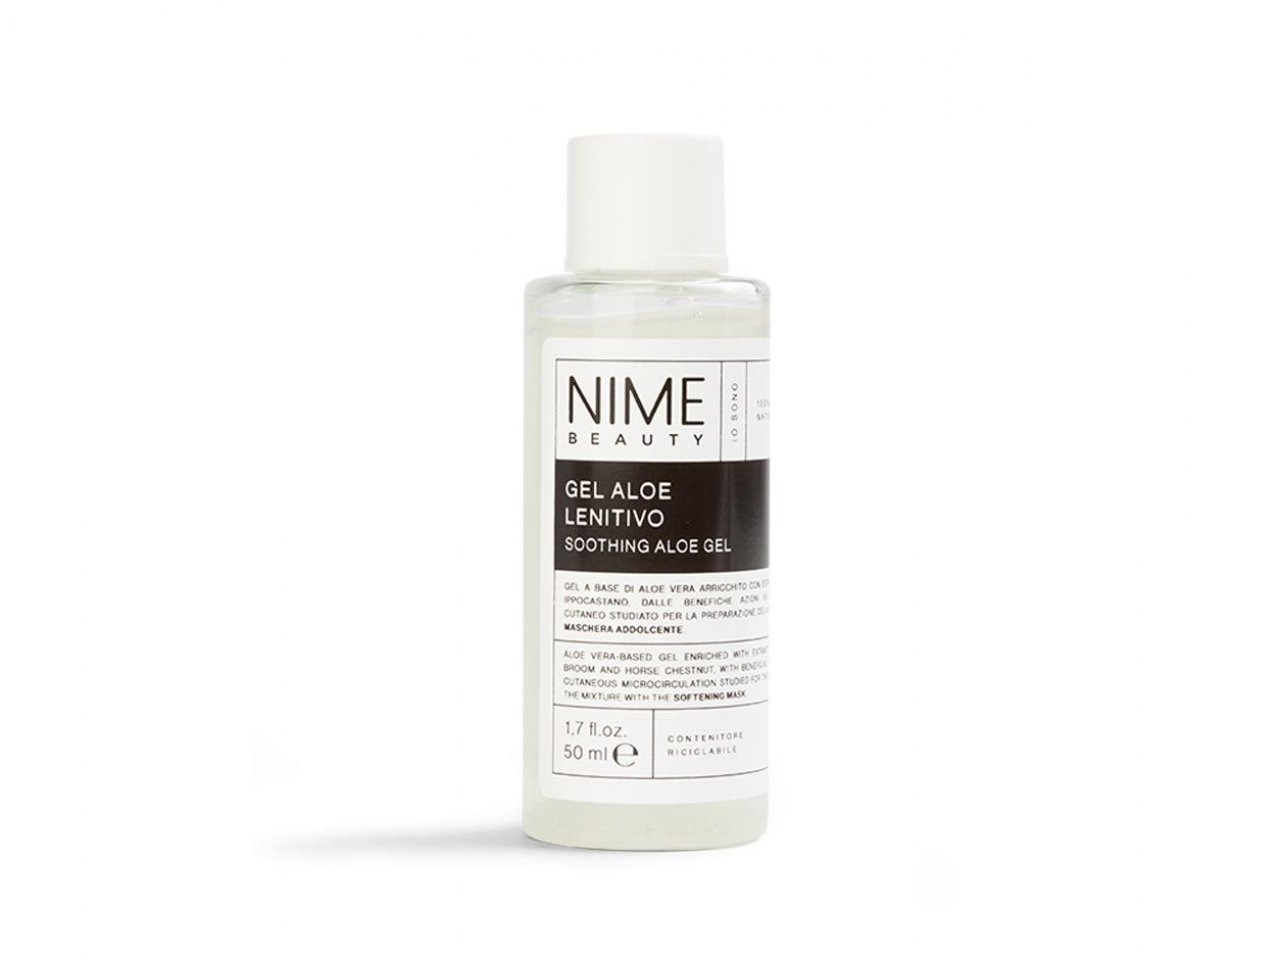 https://www.nimebeauty.it/gel-aloe-vera-viso-lenitivo